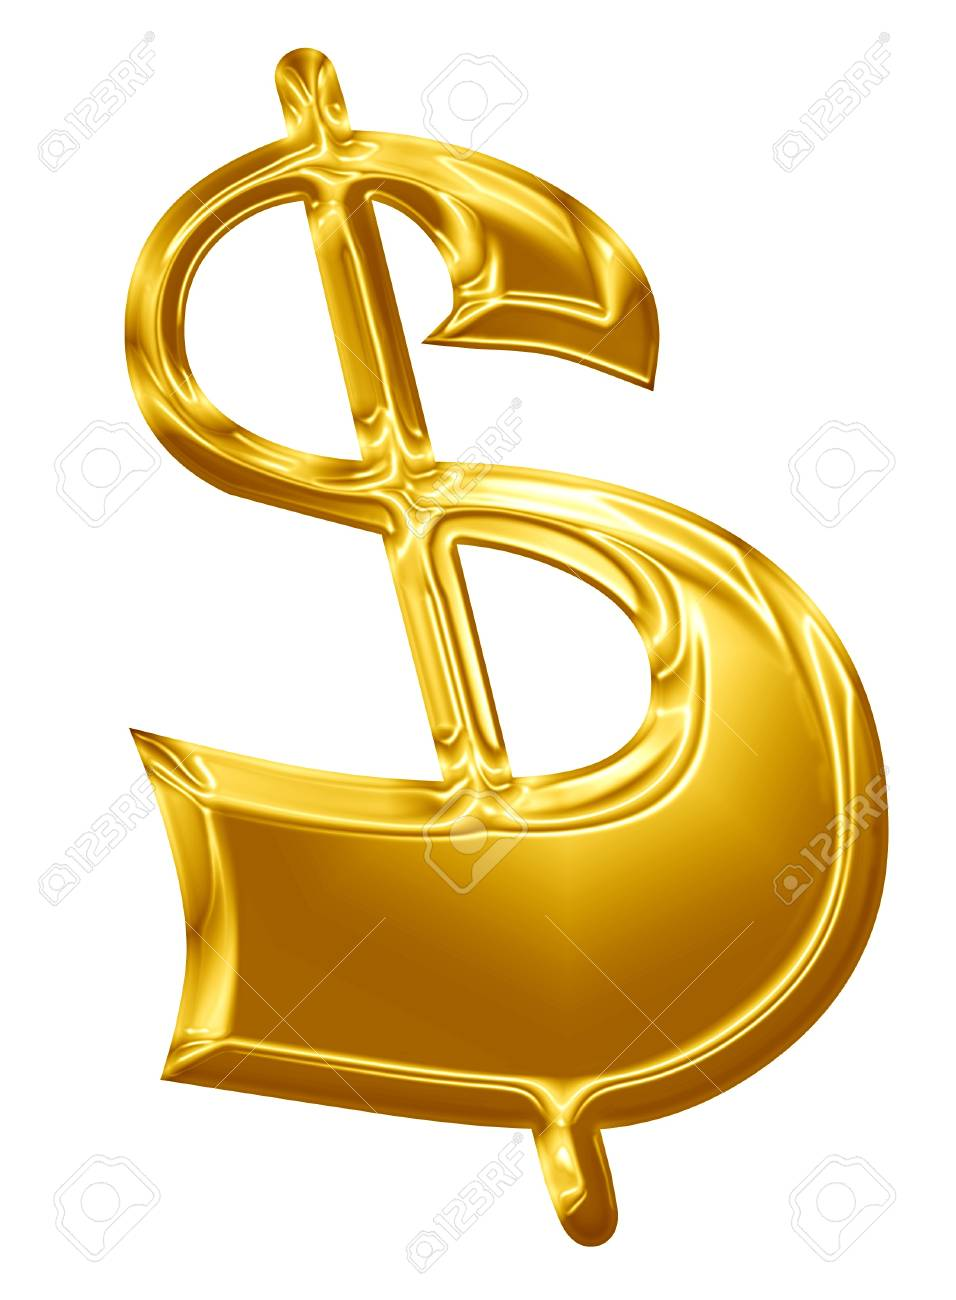 Dollar sign representing the united states common currency Stock Photo - 14670007